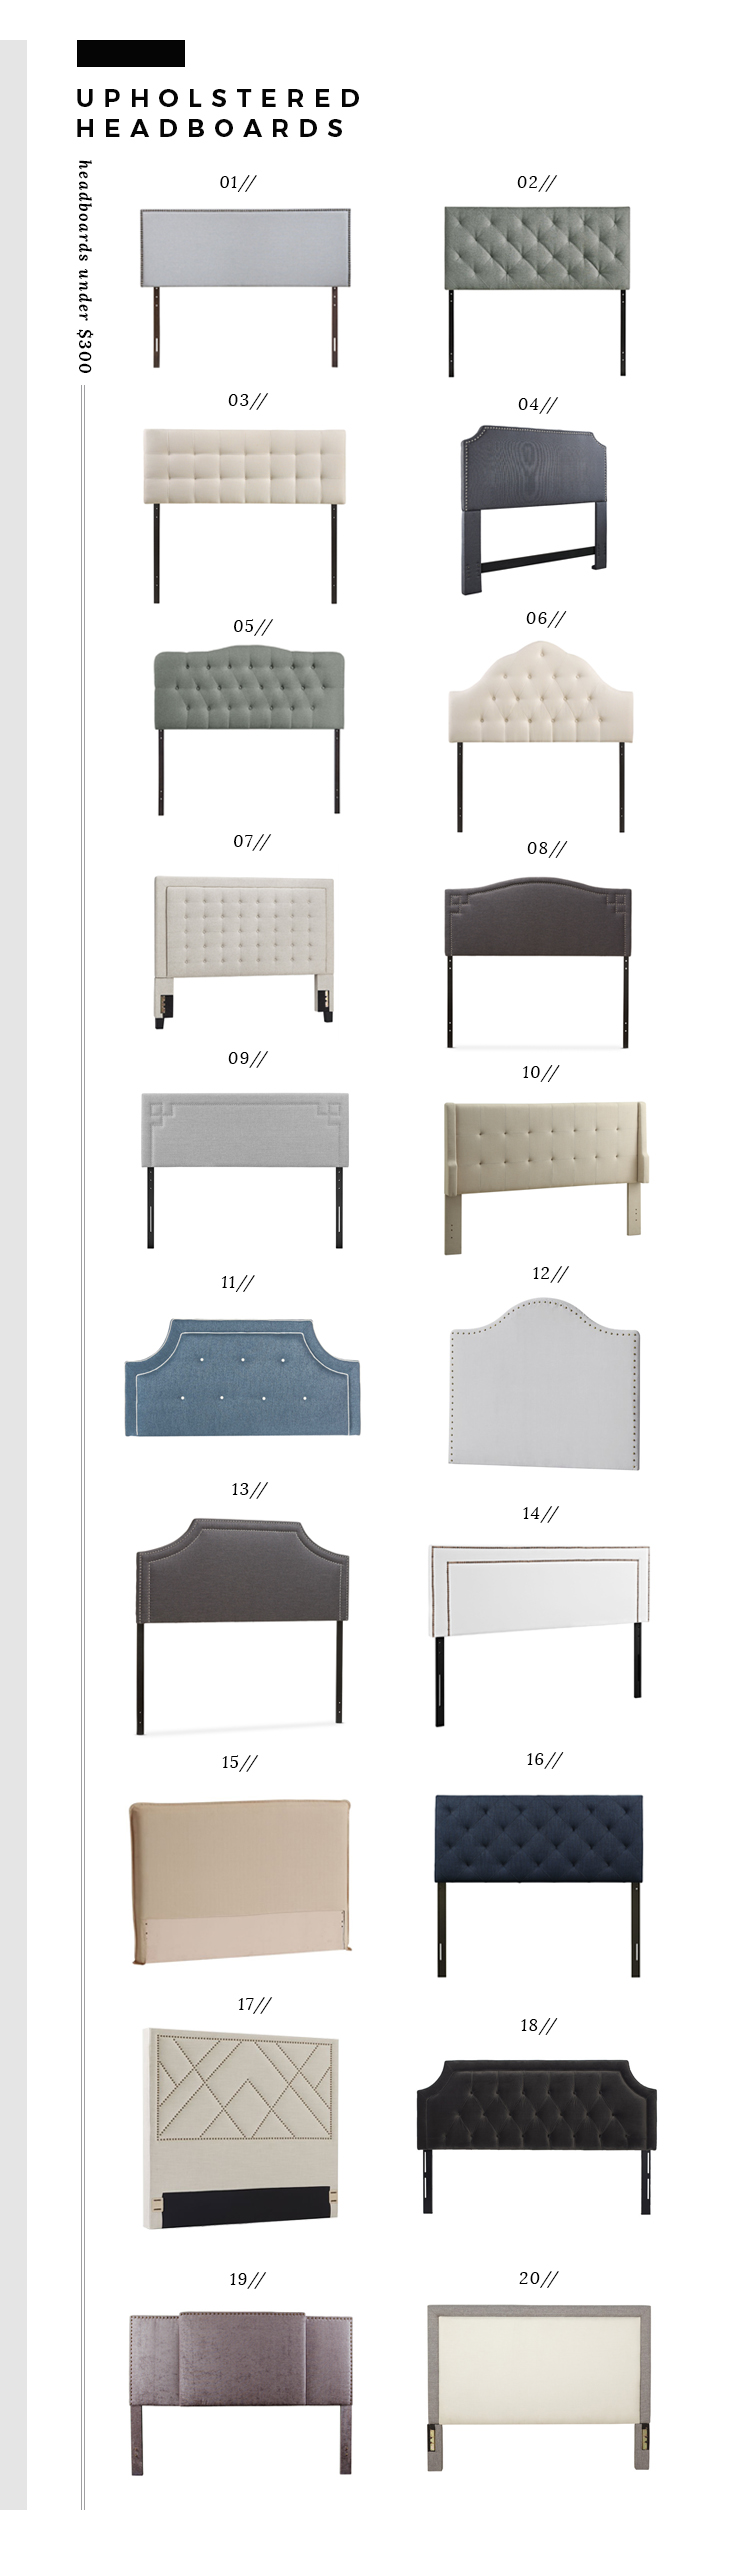 upholstered headboards under $300